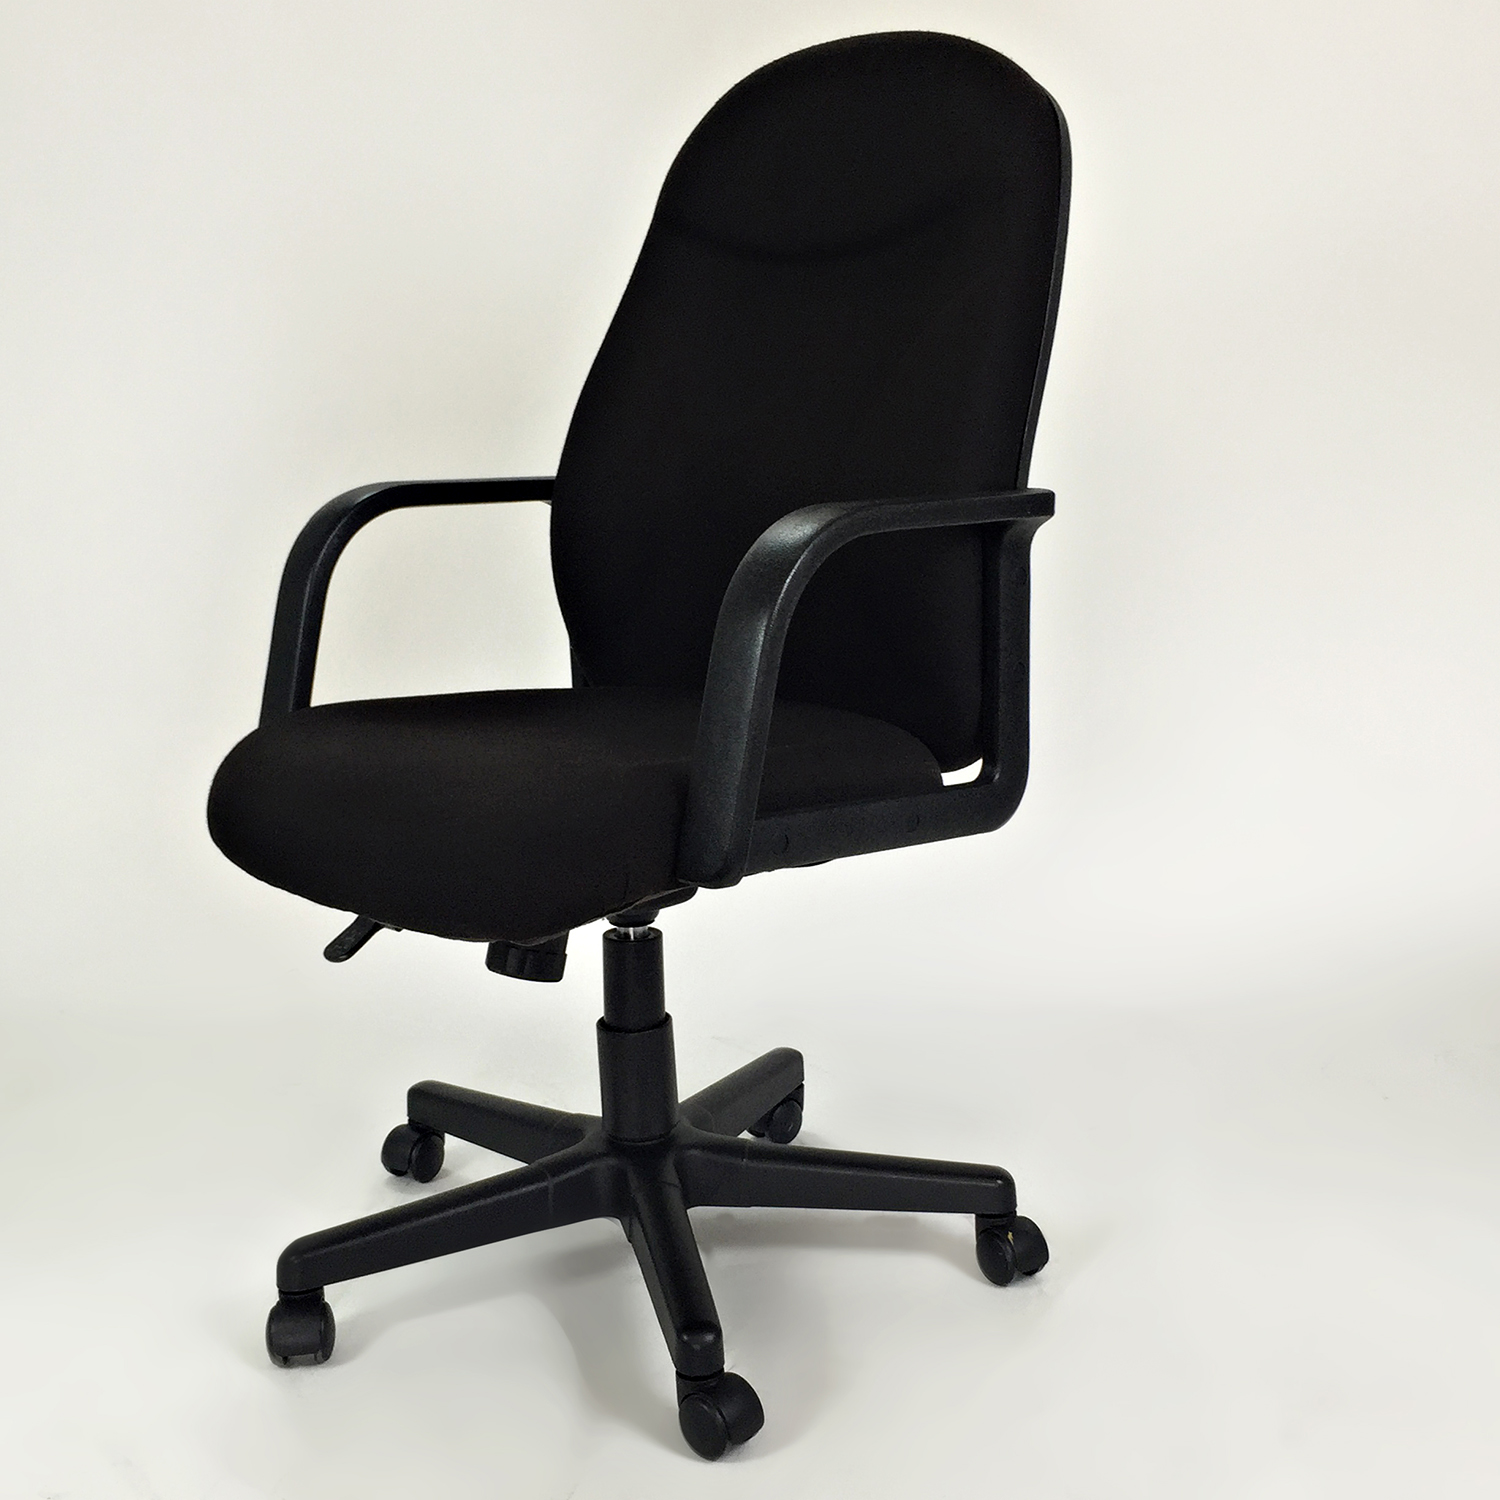 revolving chair second hand antique school desk 78 off unknown brand black office chairs